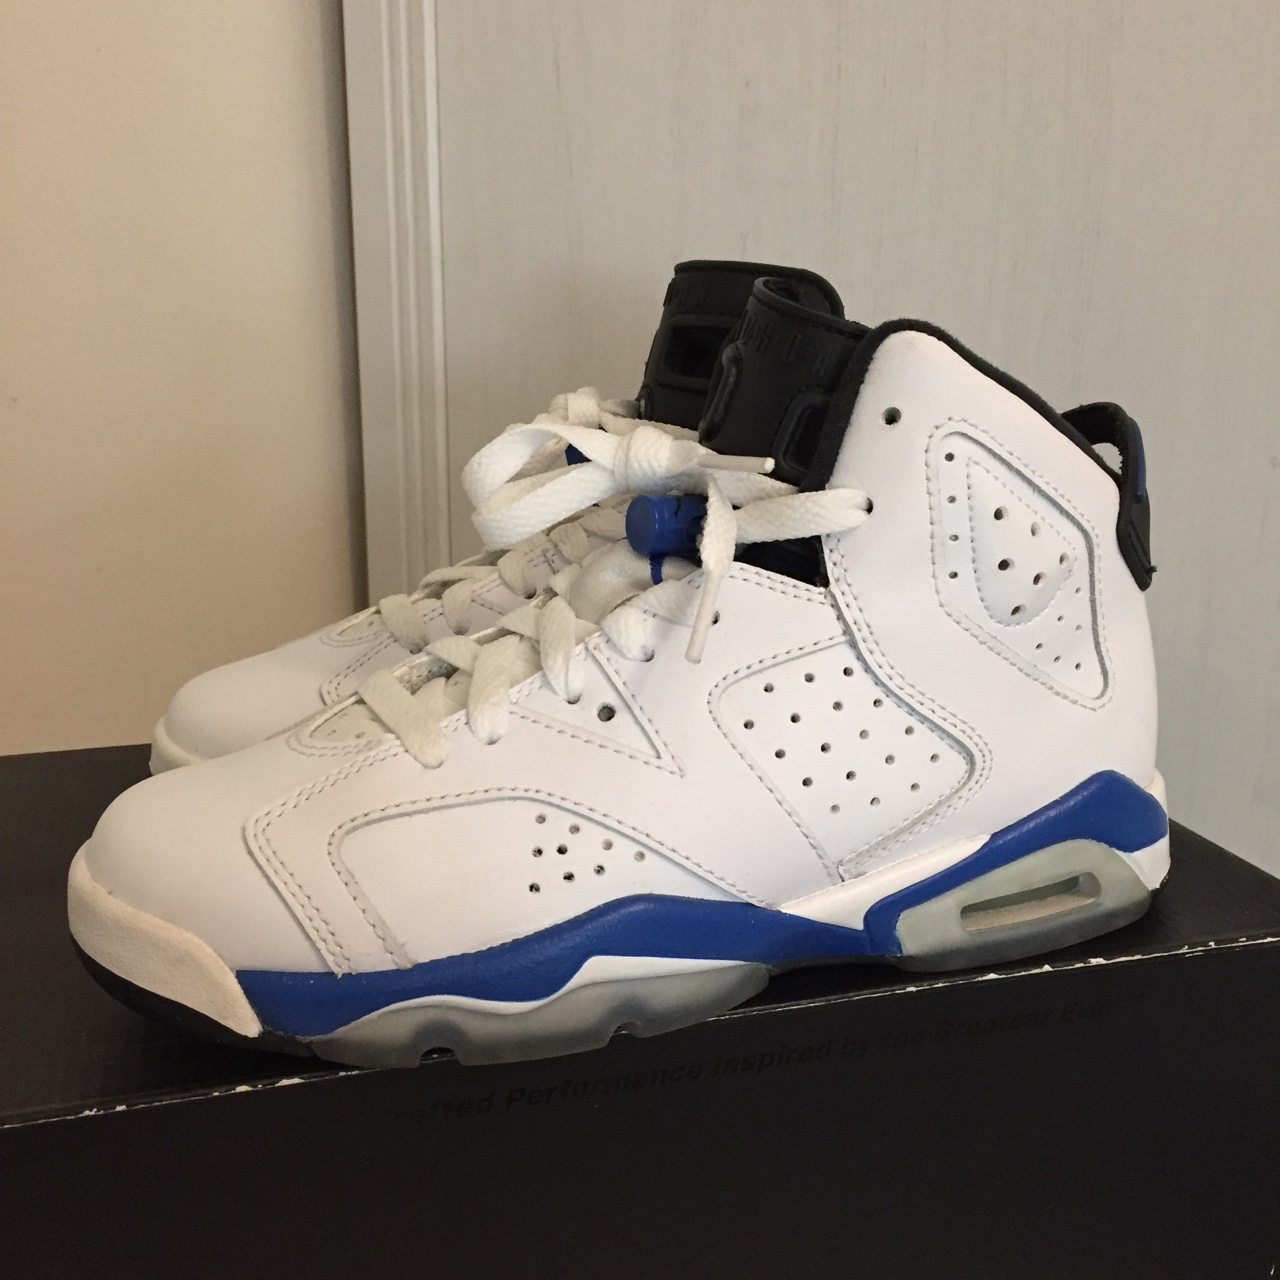 detailed look c0265 05785 GS Air Jordan Sport blue 6s size 4Y. Like new with... - Depop